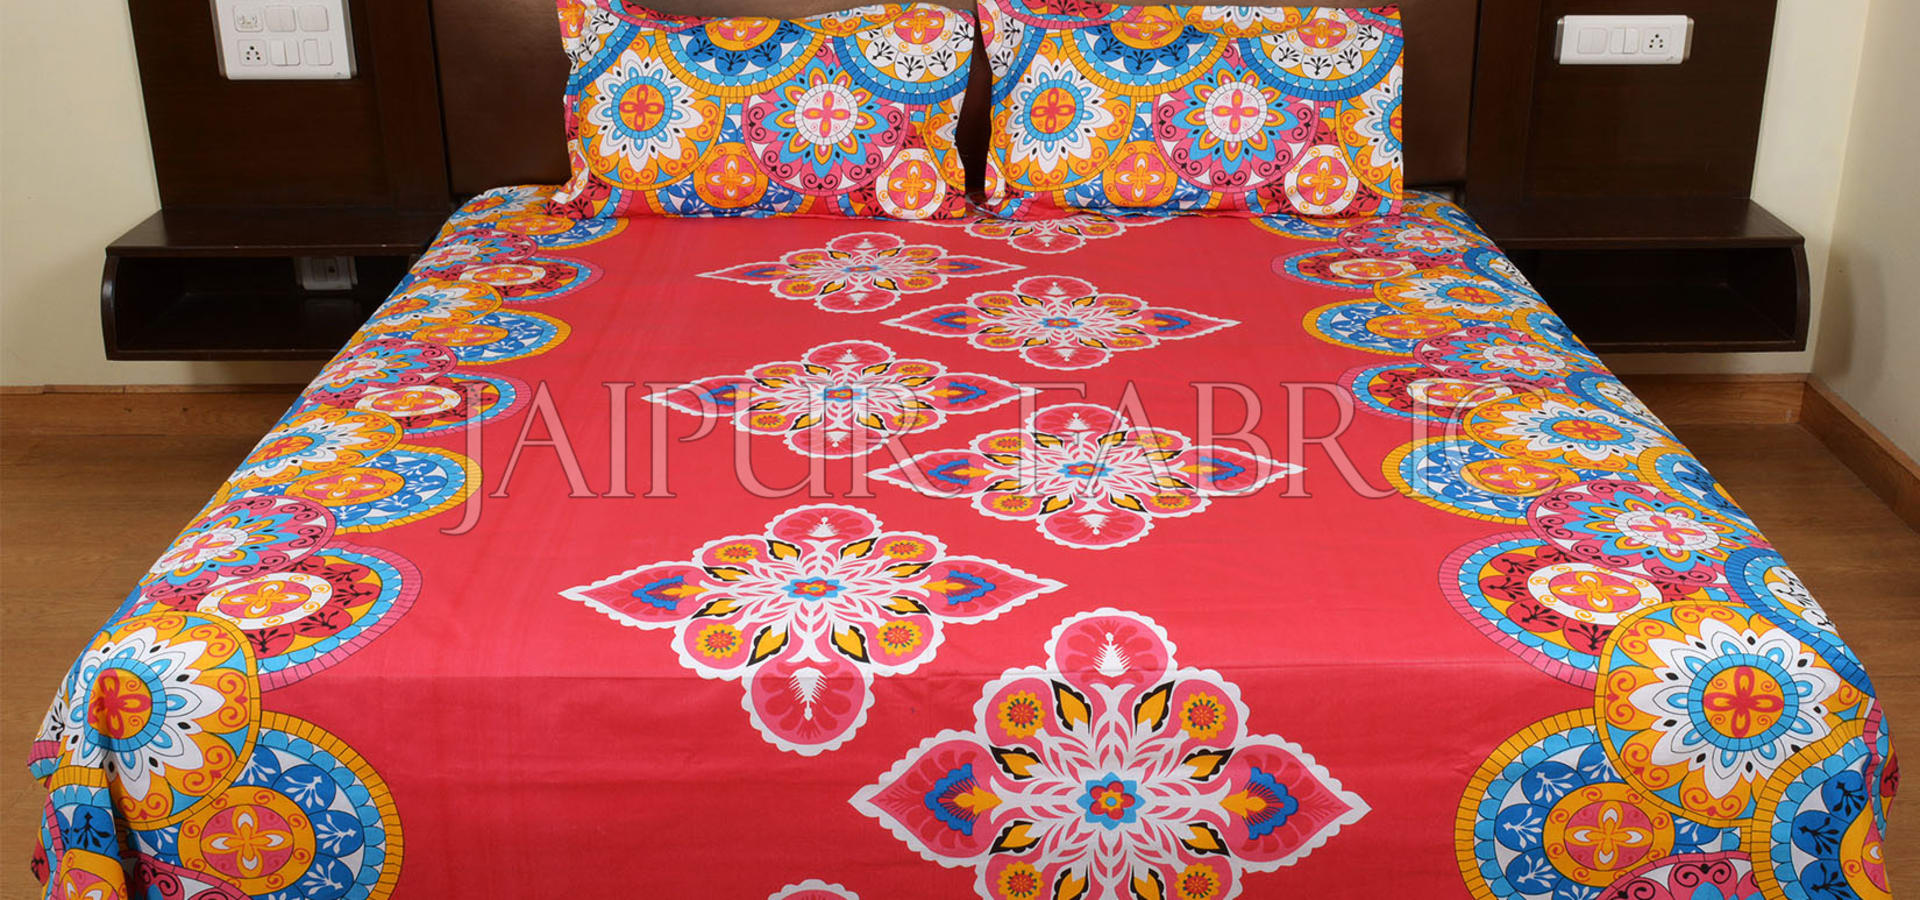 chair cover in jaipur where to rent covers near me diwan sets by fabric homify